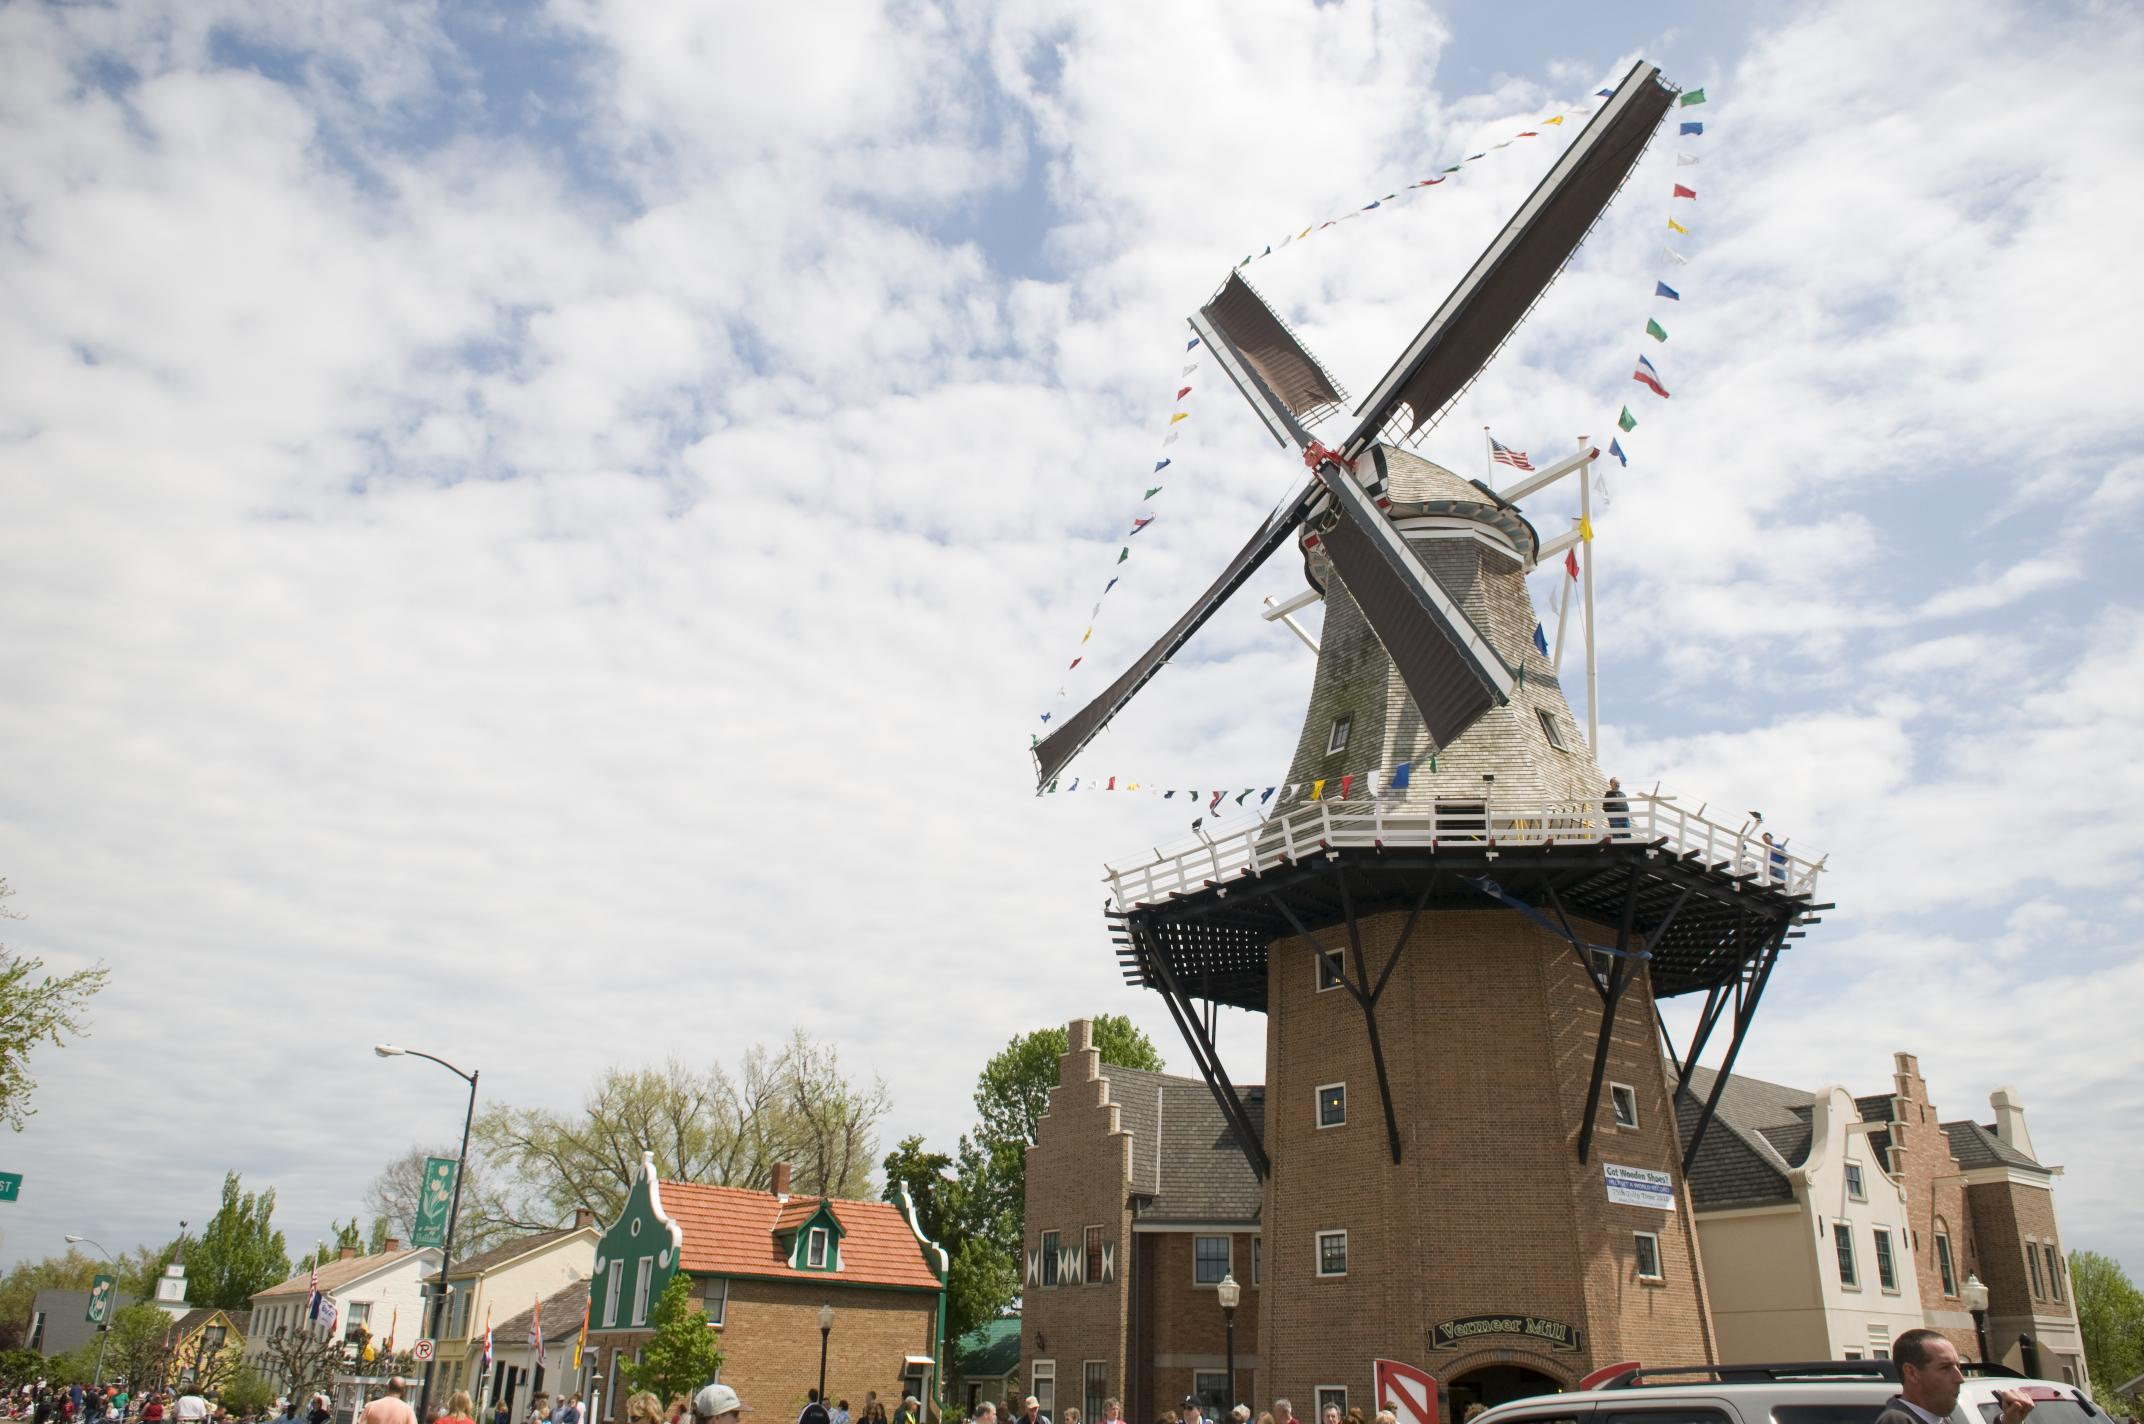 Vermeer Windmill in Pella is the tallest working windmill in the nation.